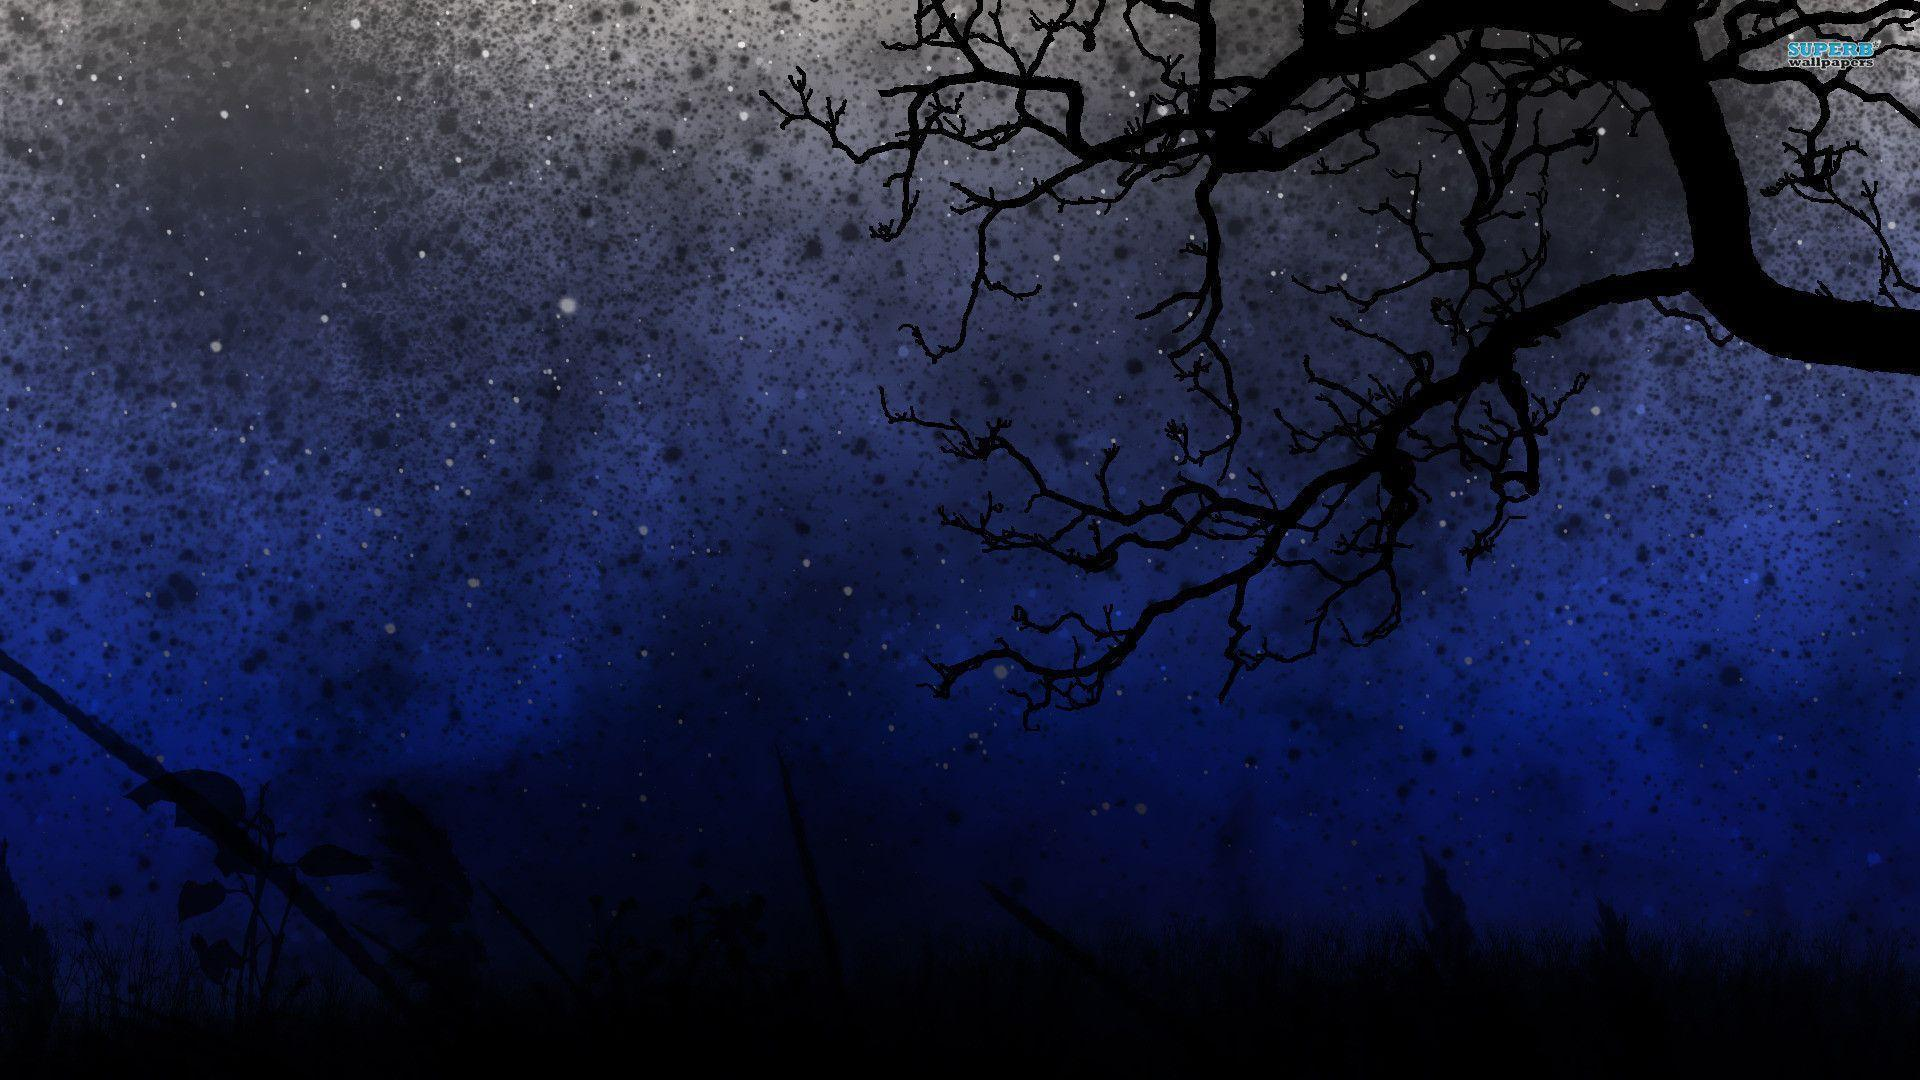 wallpaper starry night for - photo #7